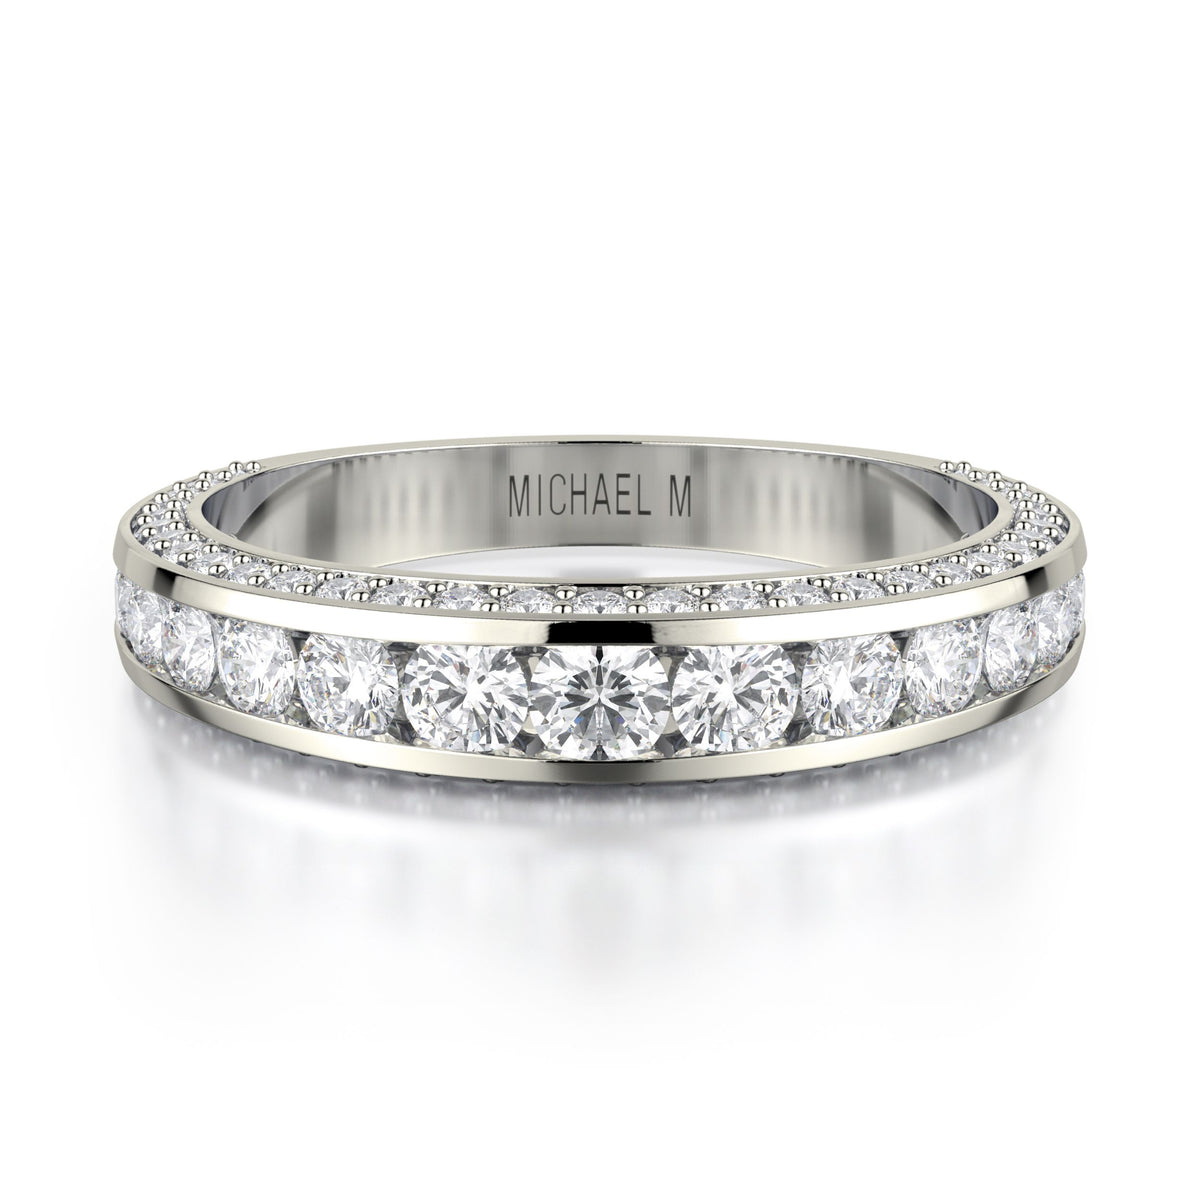 Michael M 18KWG Diamond Wedding Band